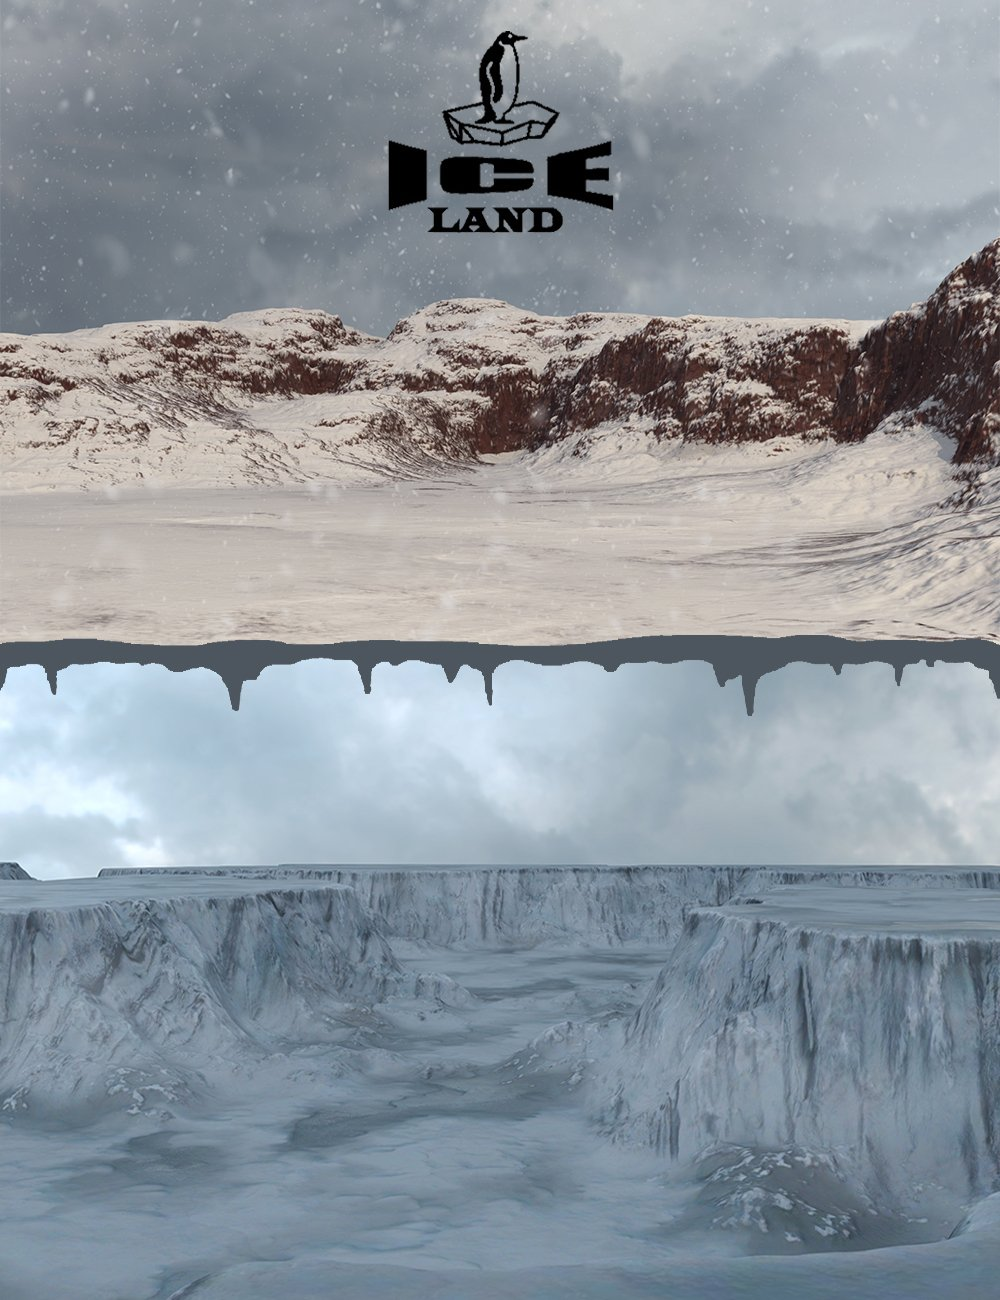 Ice Land by: 3dLab, 3D Models by Daz 3D